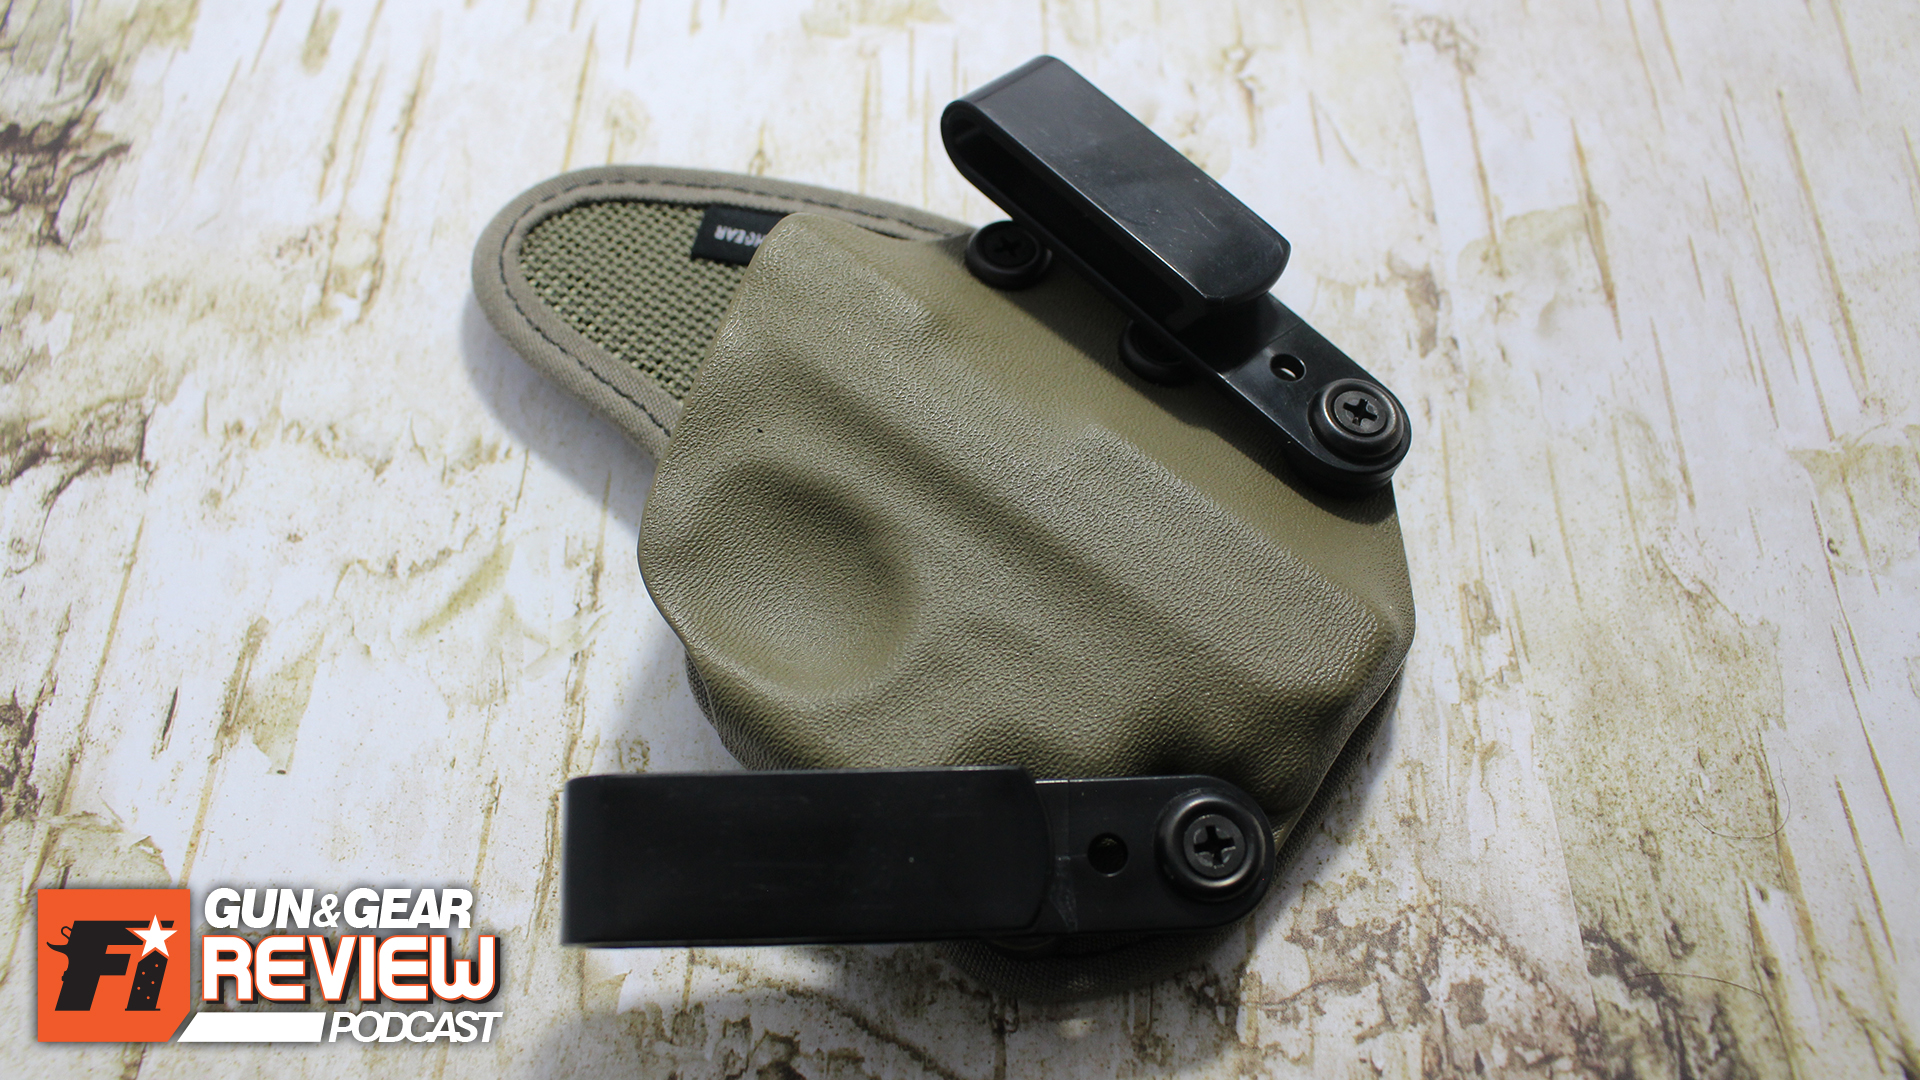 The AIWB holster came with two belt clips for the option of securing the gun angle.